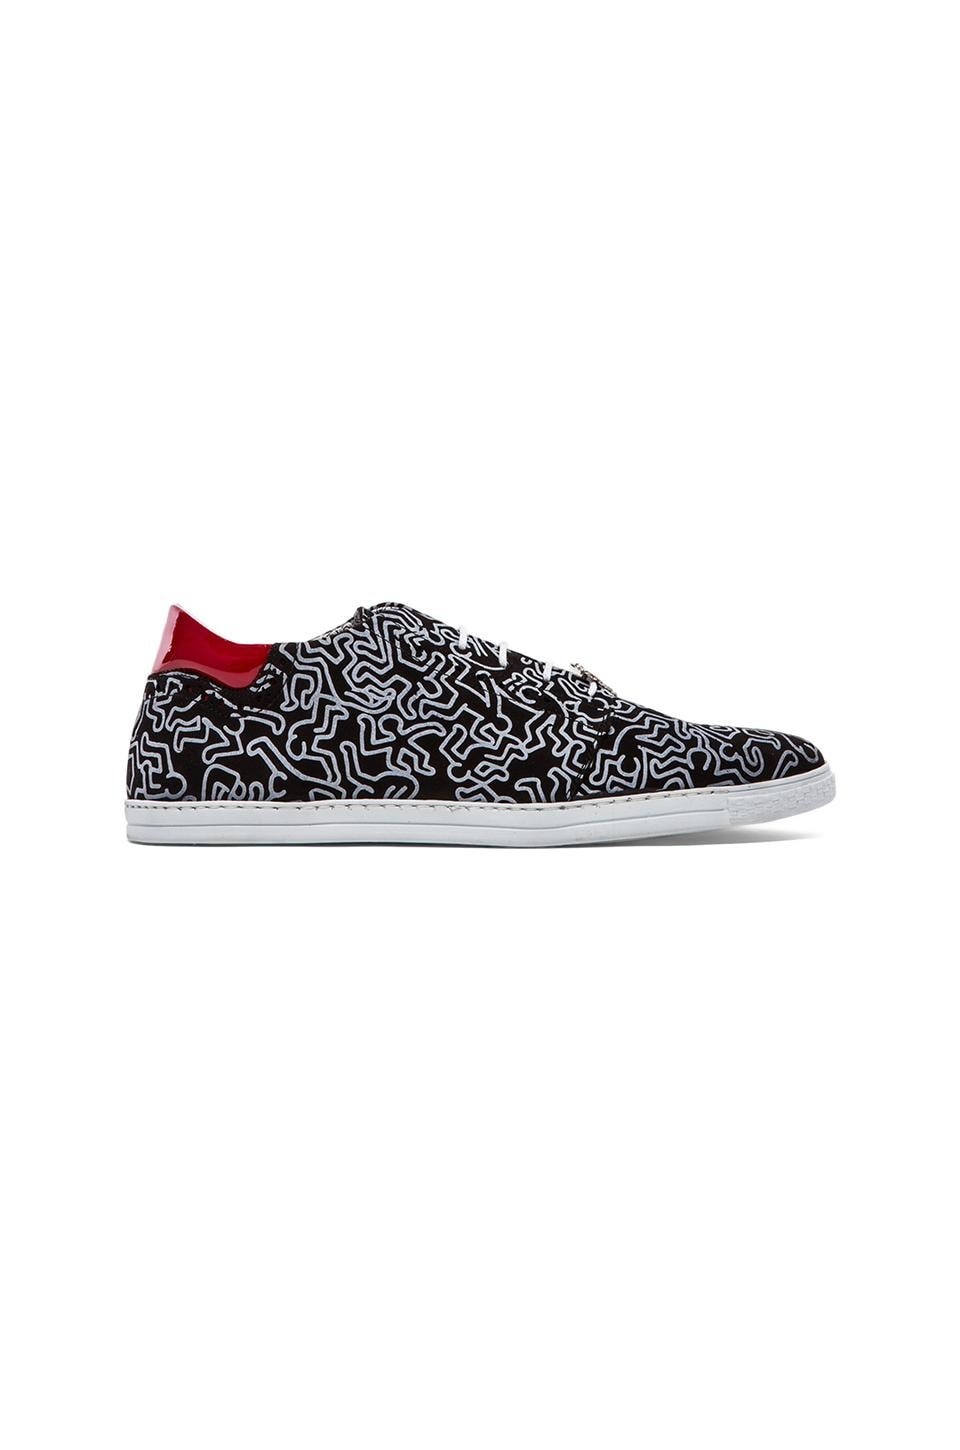 SWEAR x Keith Haring Dean 2 in Black & White